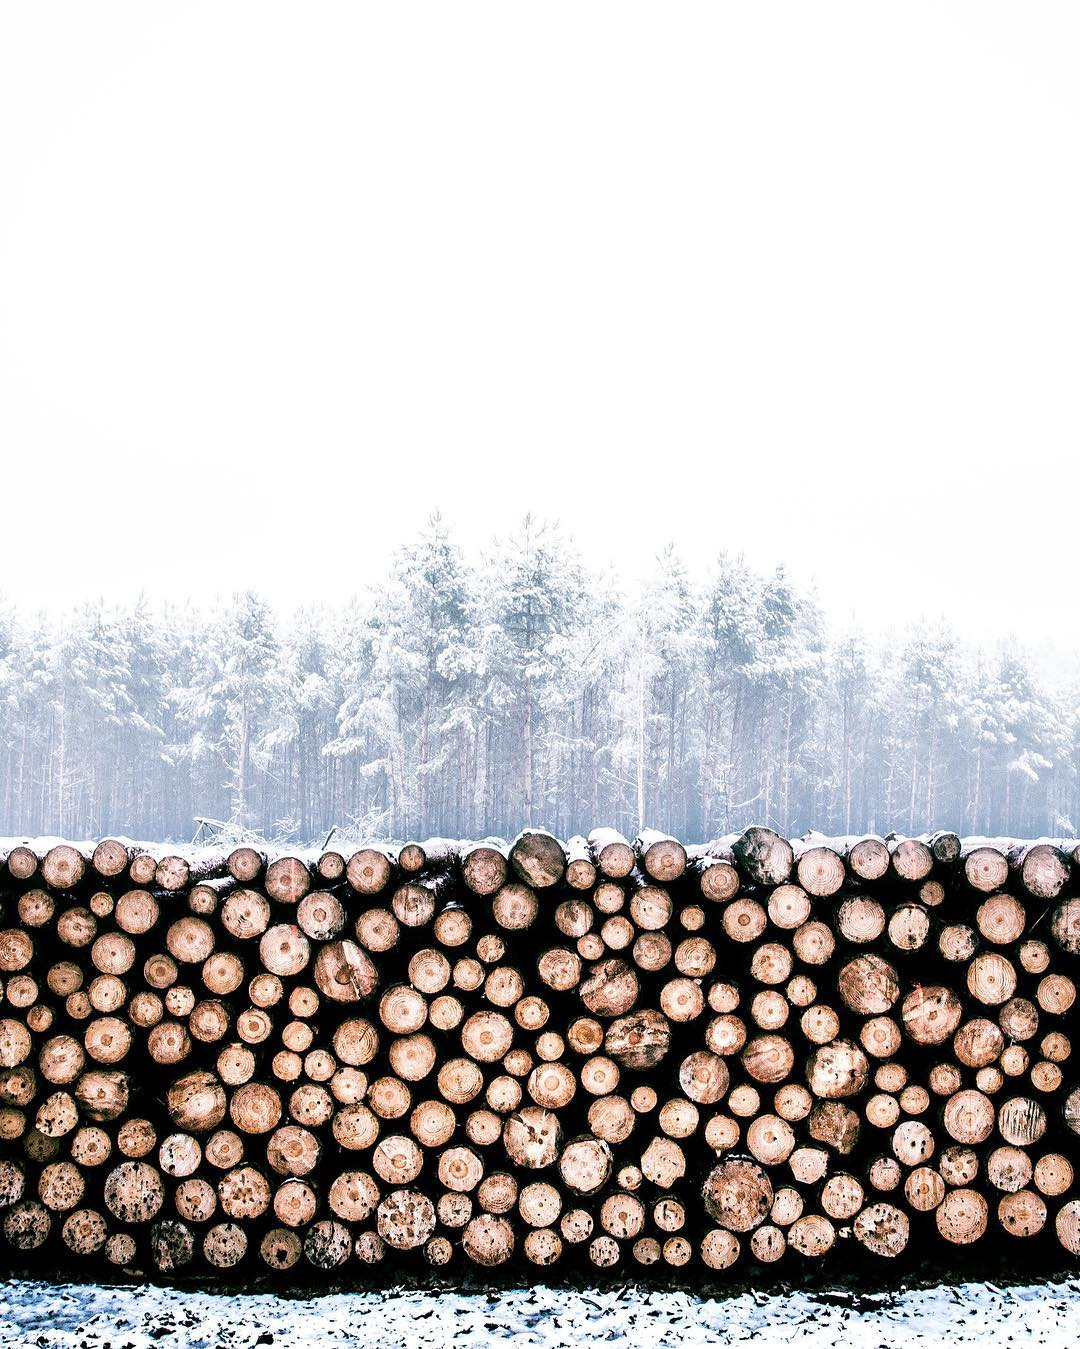 How many trees can you fit into one photo? Take a guess. #NatureOfProof